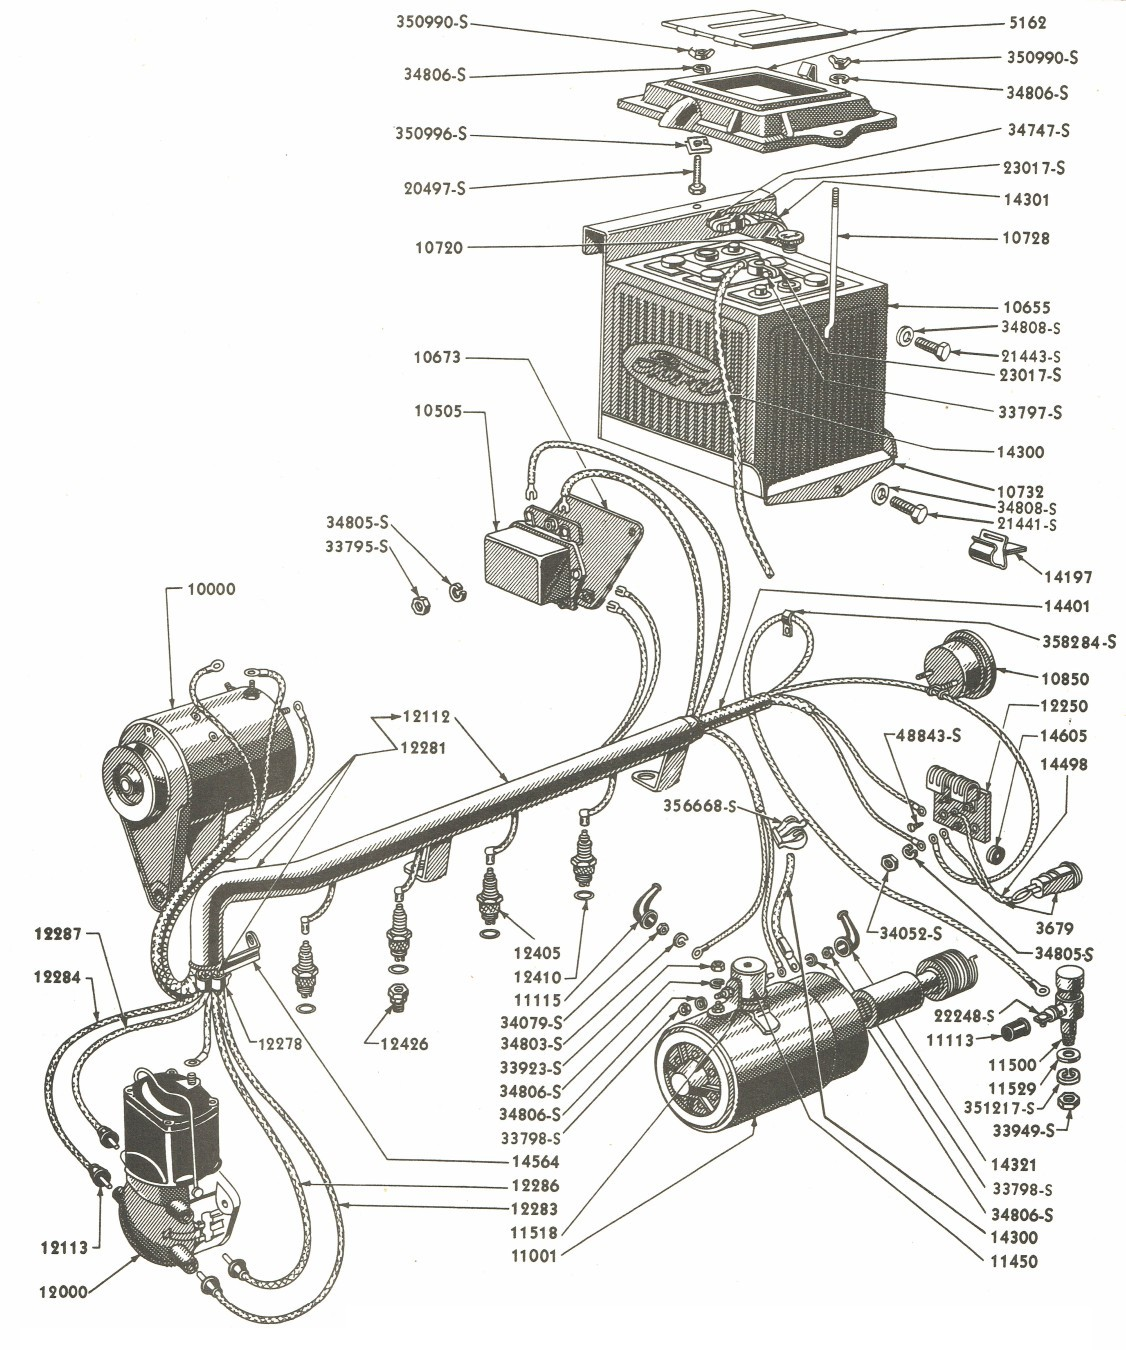 1953 Ford Naa Wiring Diagram Wiring Diagram Sonata Sonata Graniantichiumbri It